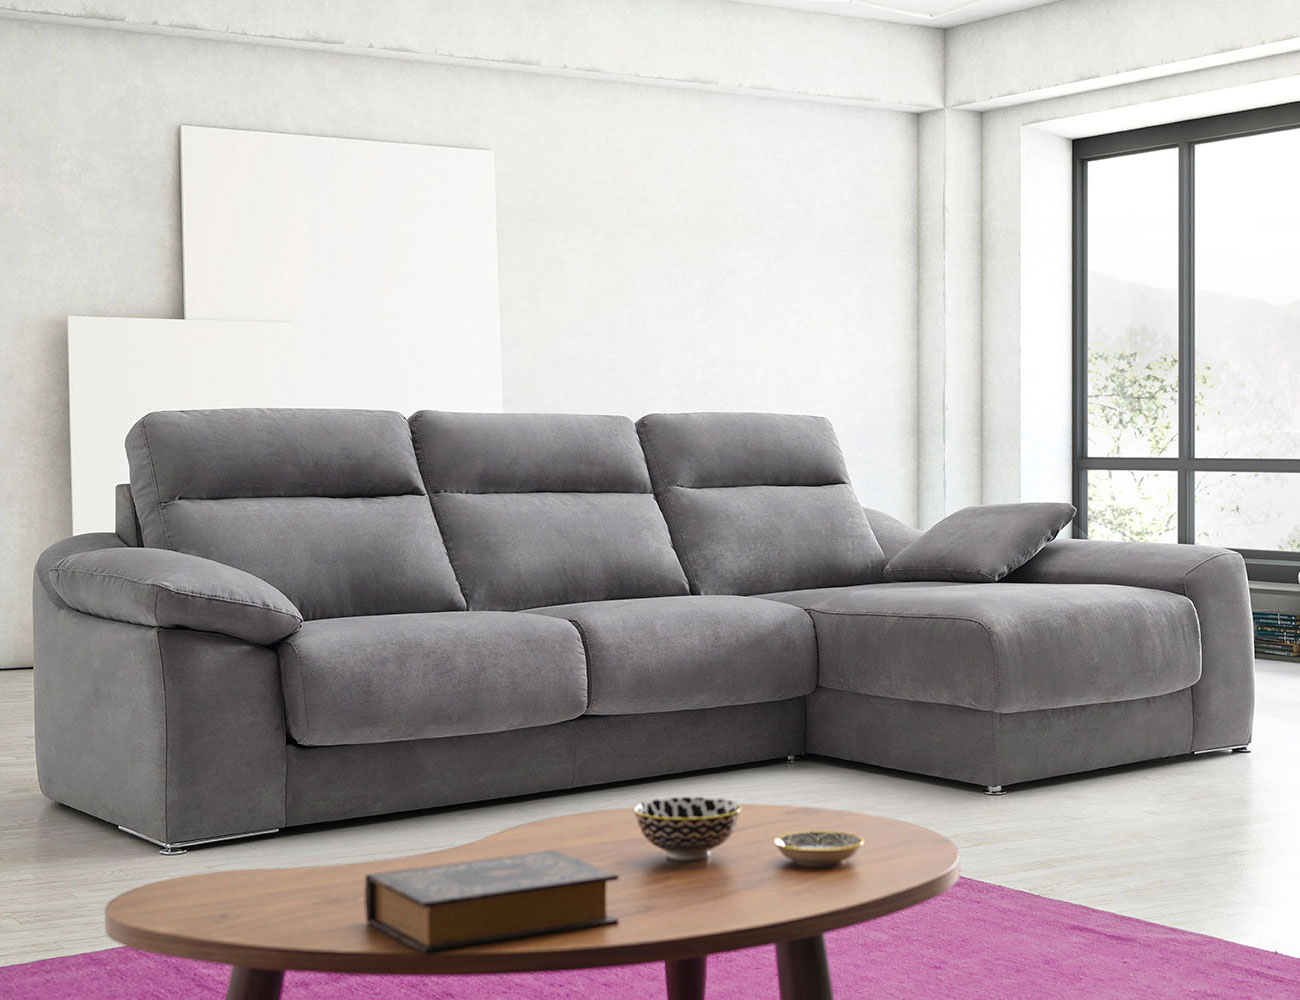 Sofa chaiselongue asientos viscolastica pedro ortiz1